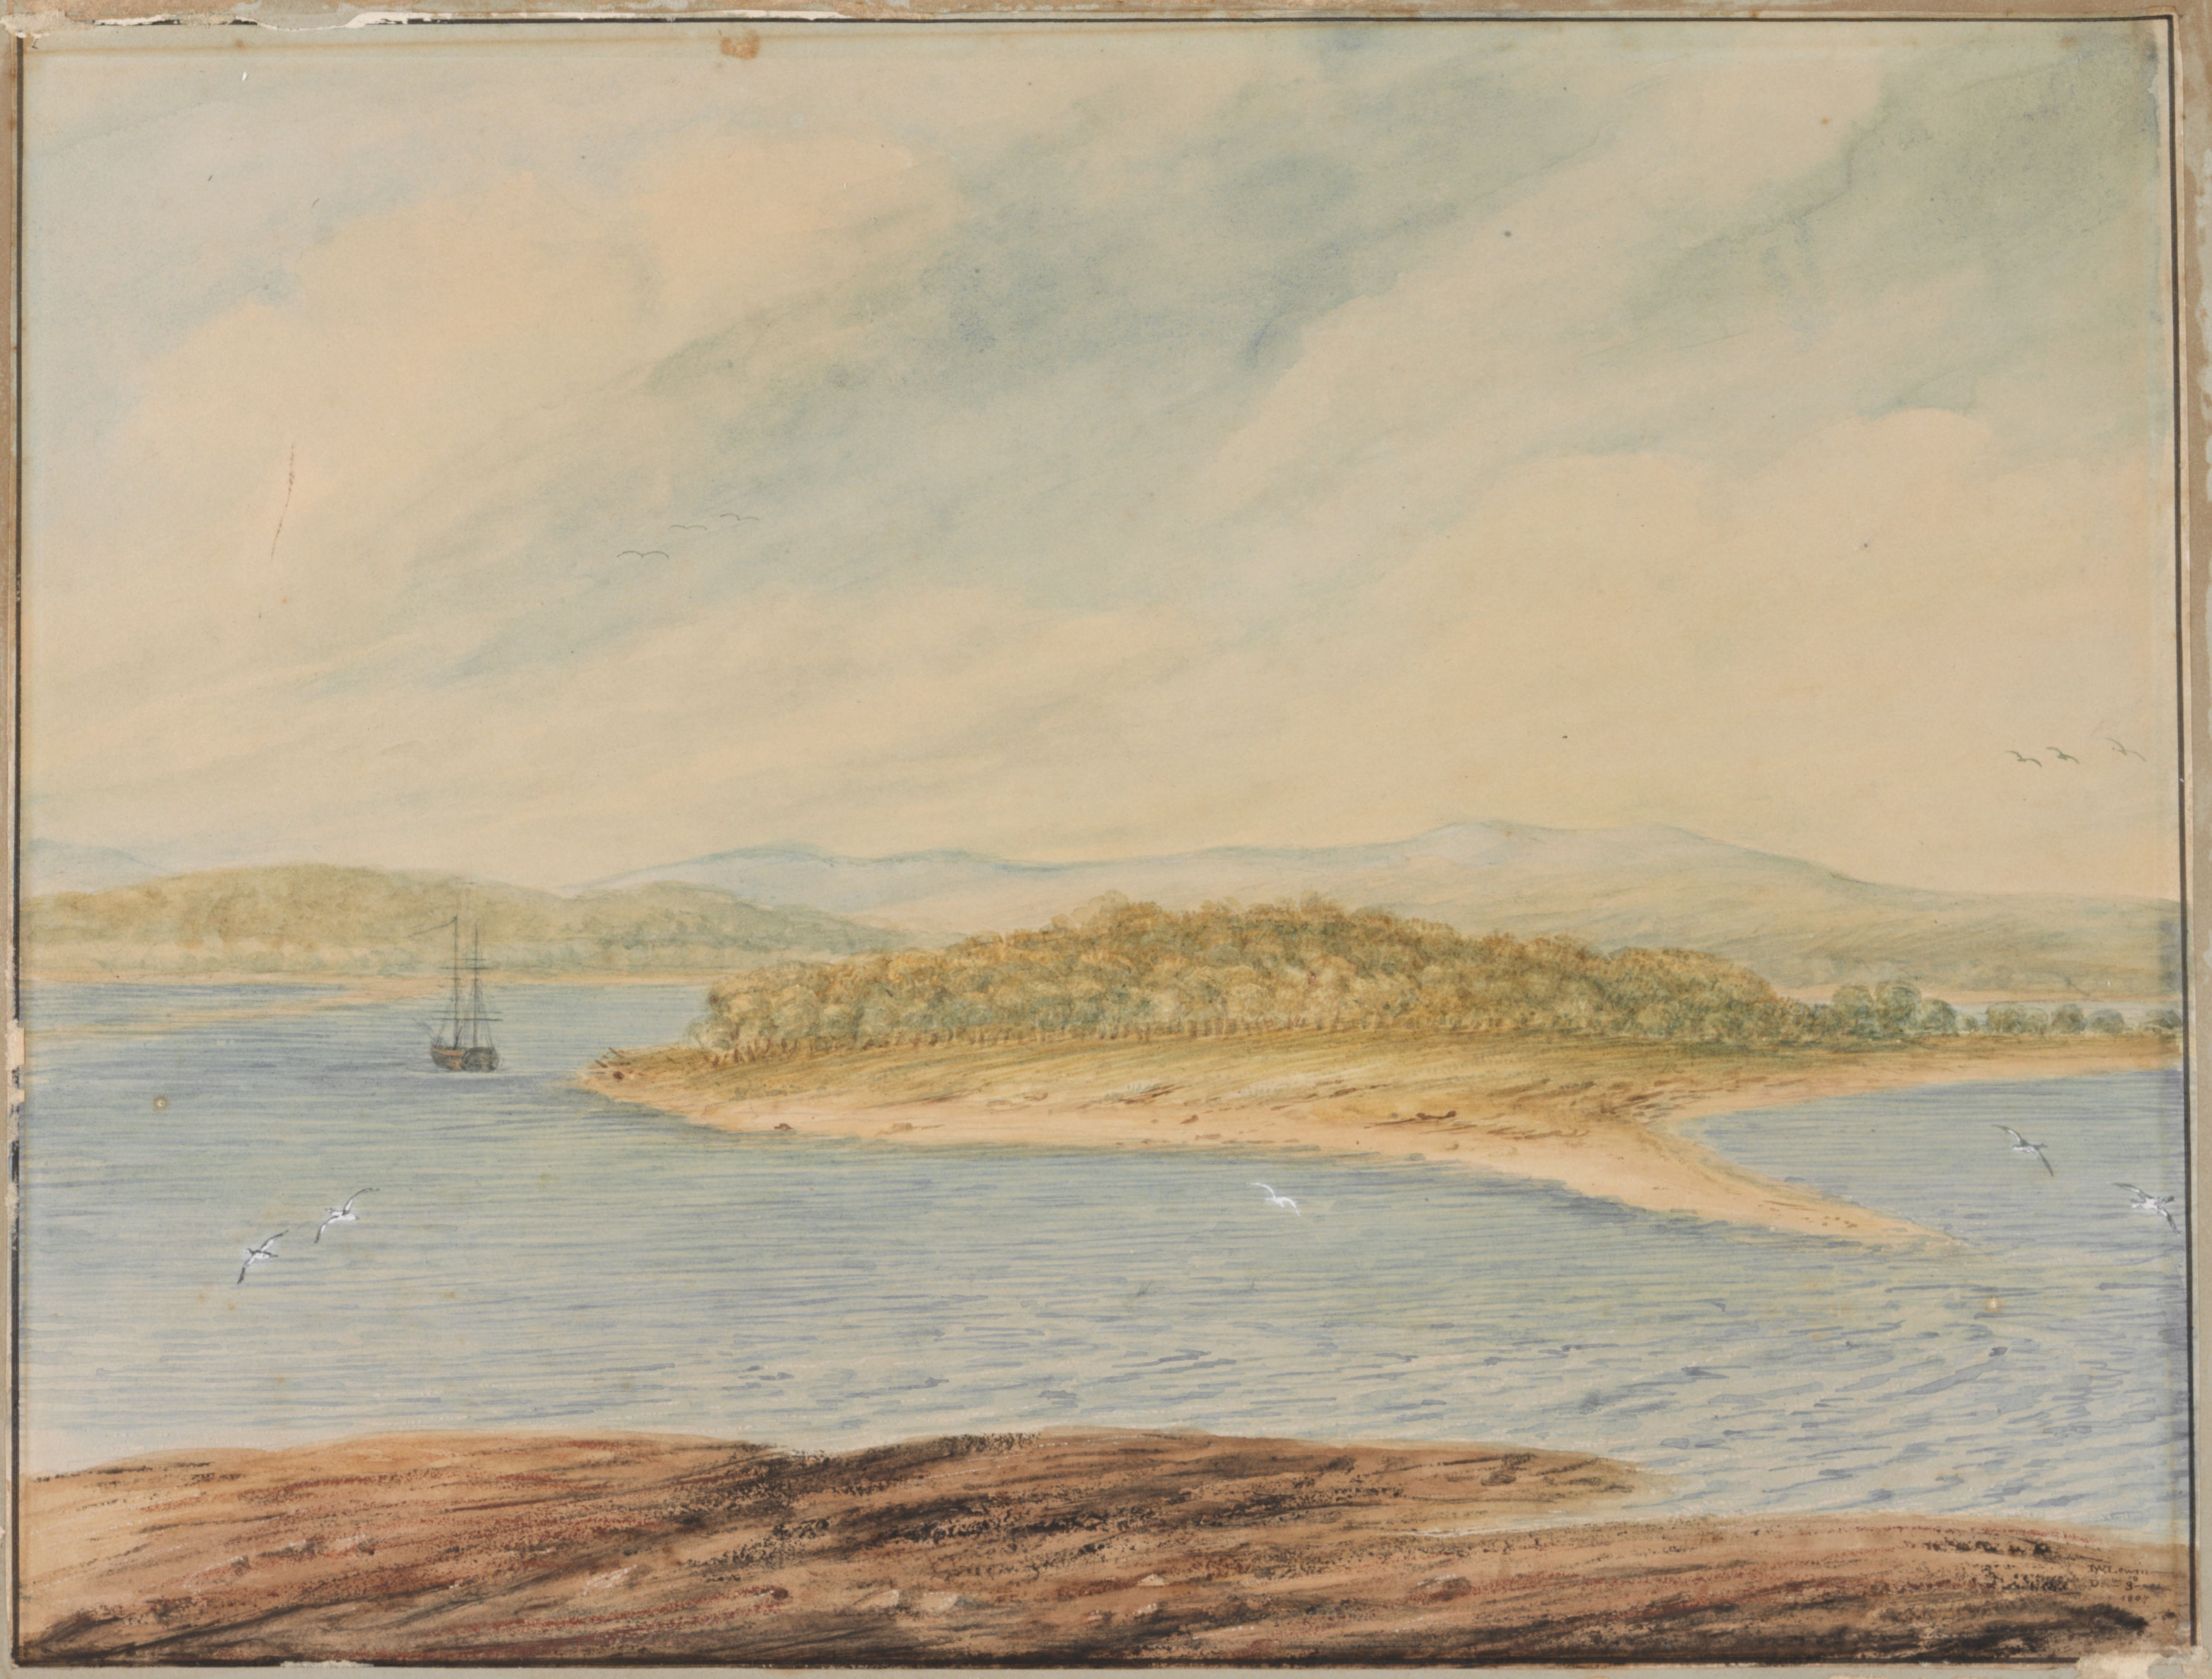 """""""Coal River, N.S. Wales 1807"""" by I.W. Lewin. Courtesy of the State Library of NSW"""